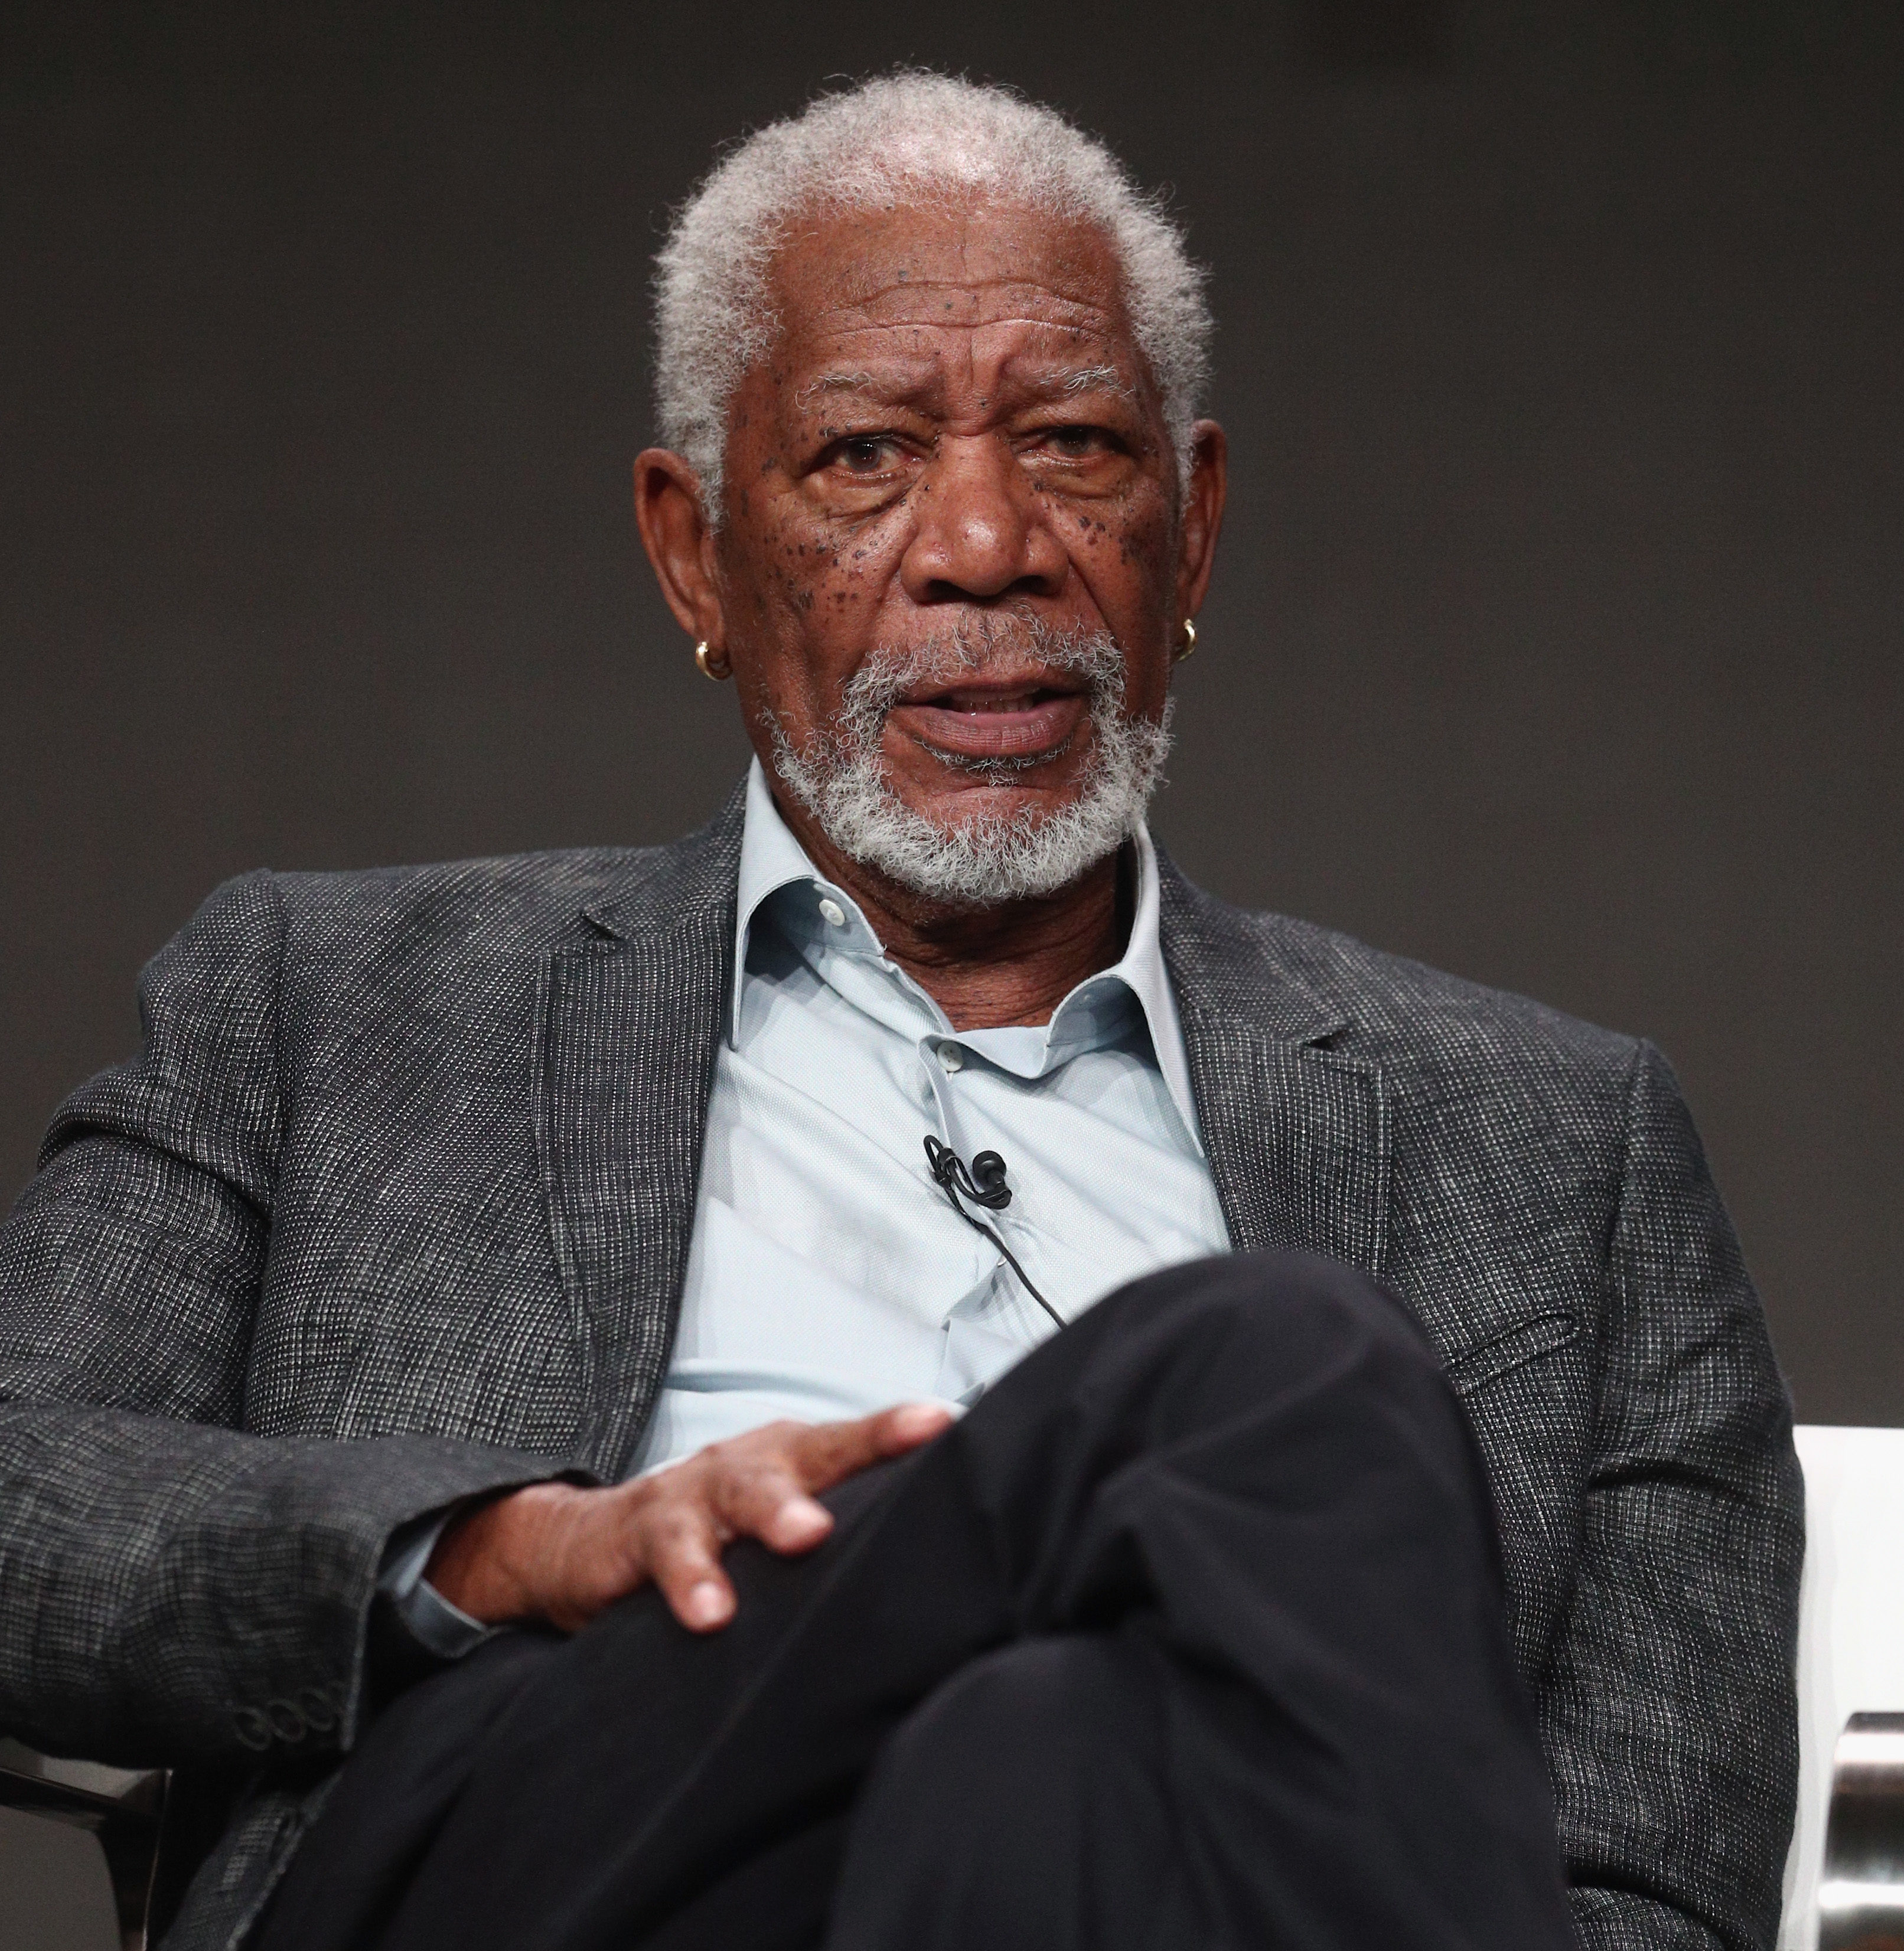 Morgan Freeman has been accused of sexual harassment by eight women, because there really IS no good in the world just FYI